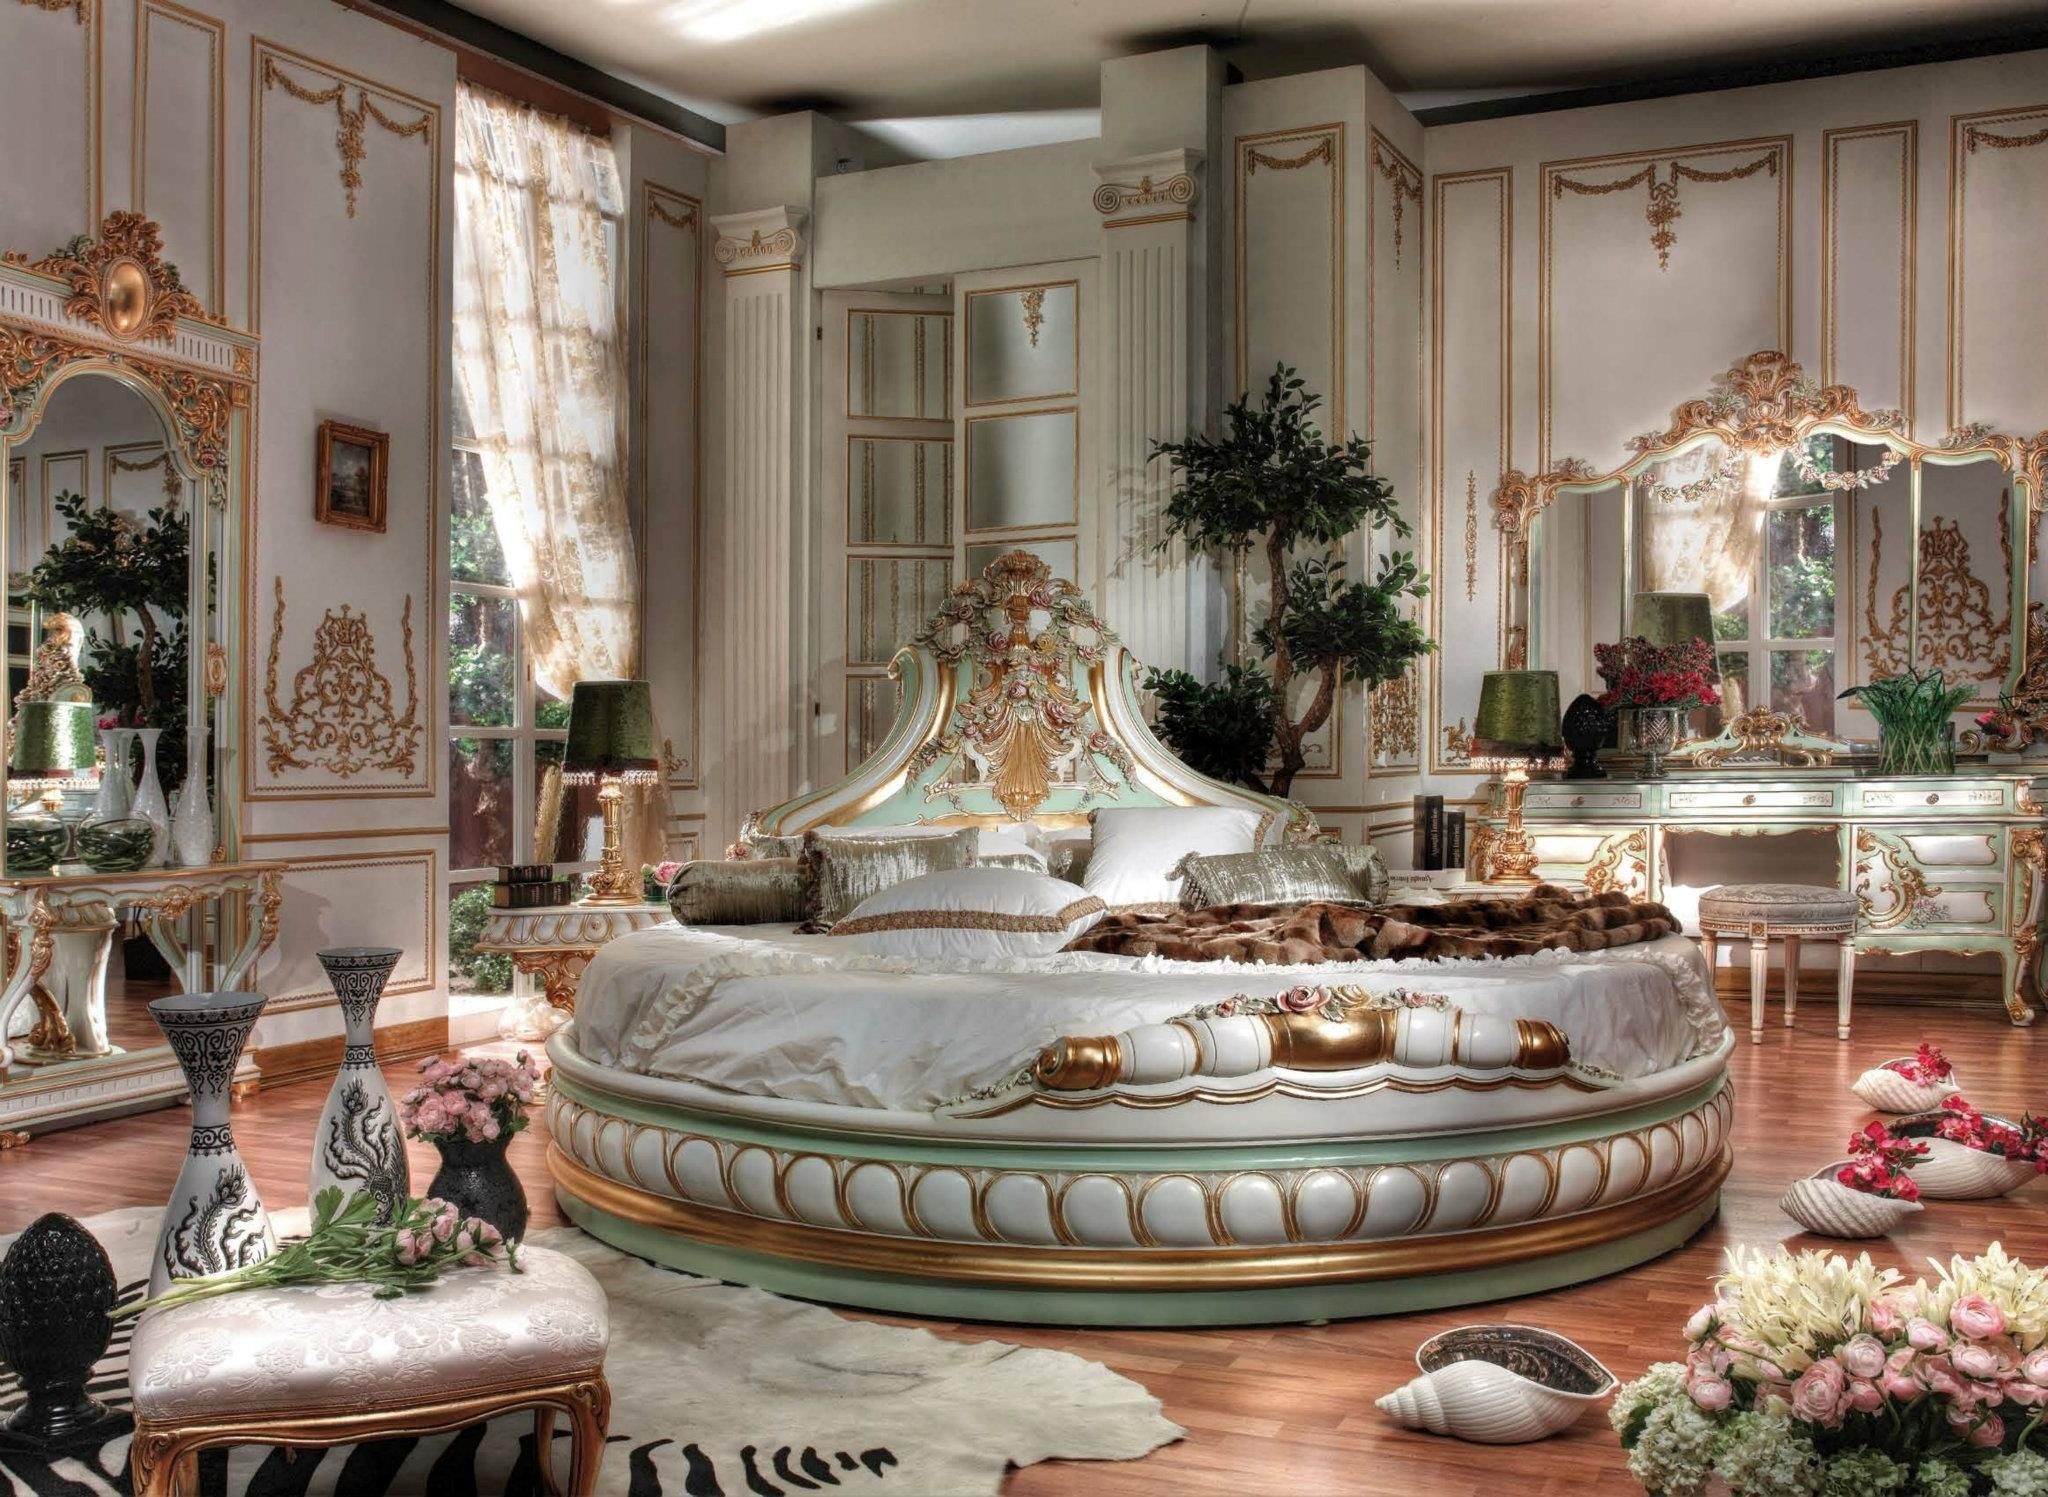 Image Result For Romantic Victorian Pics Of Houses Interiors Schlafzimmer Design Luxusschlafzimmer Königliches Schlafzimmer